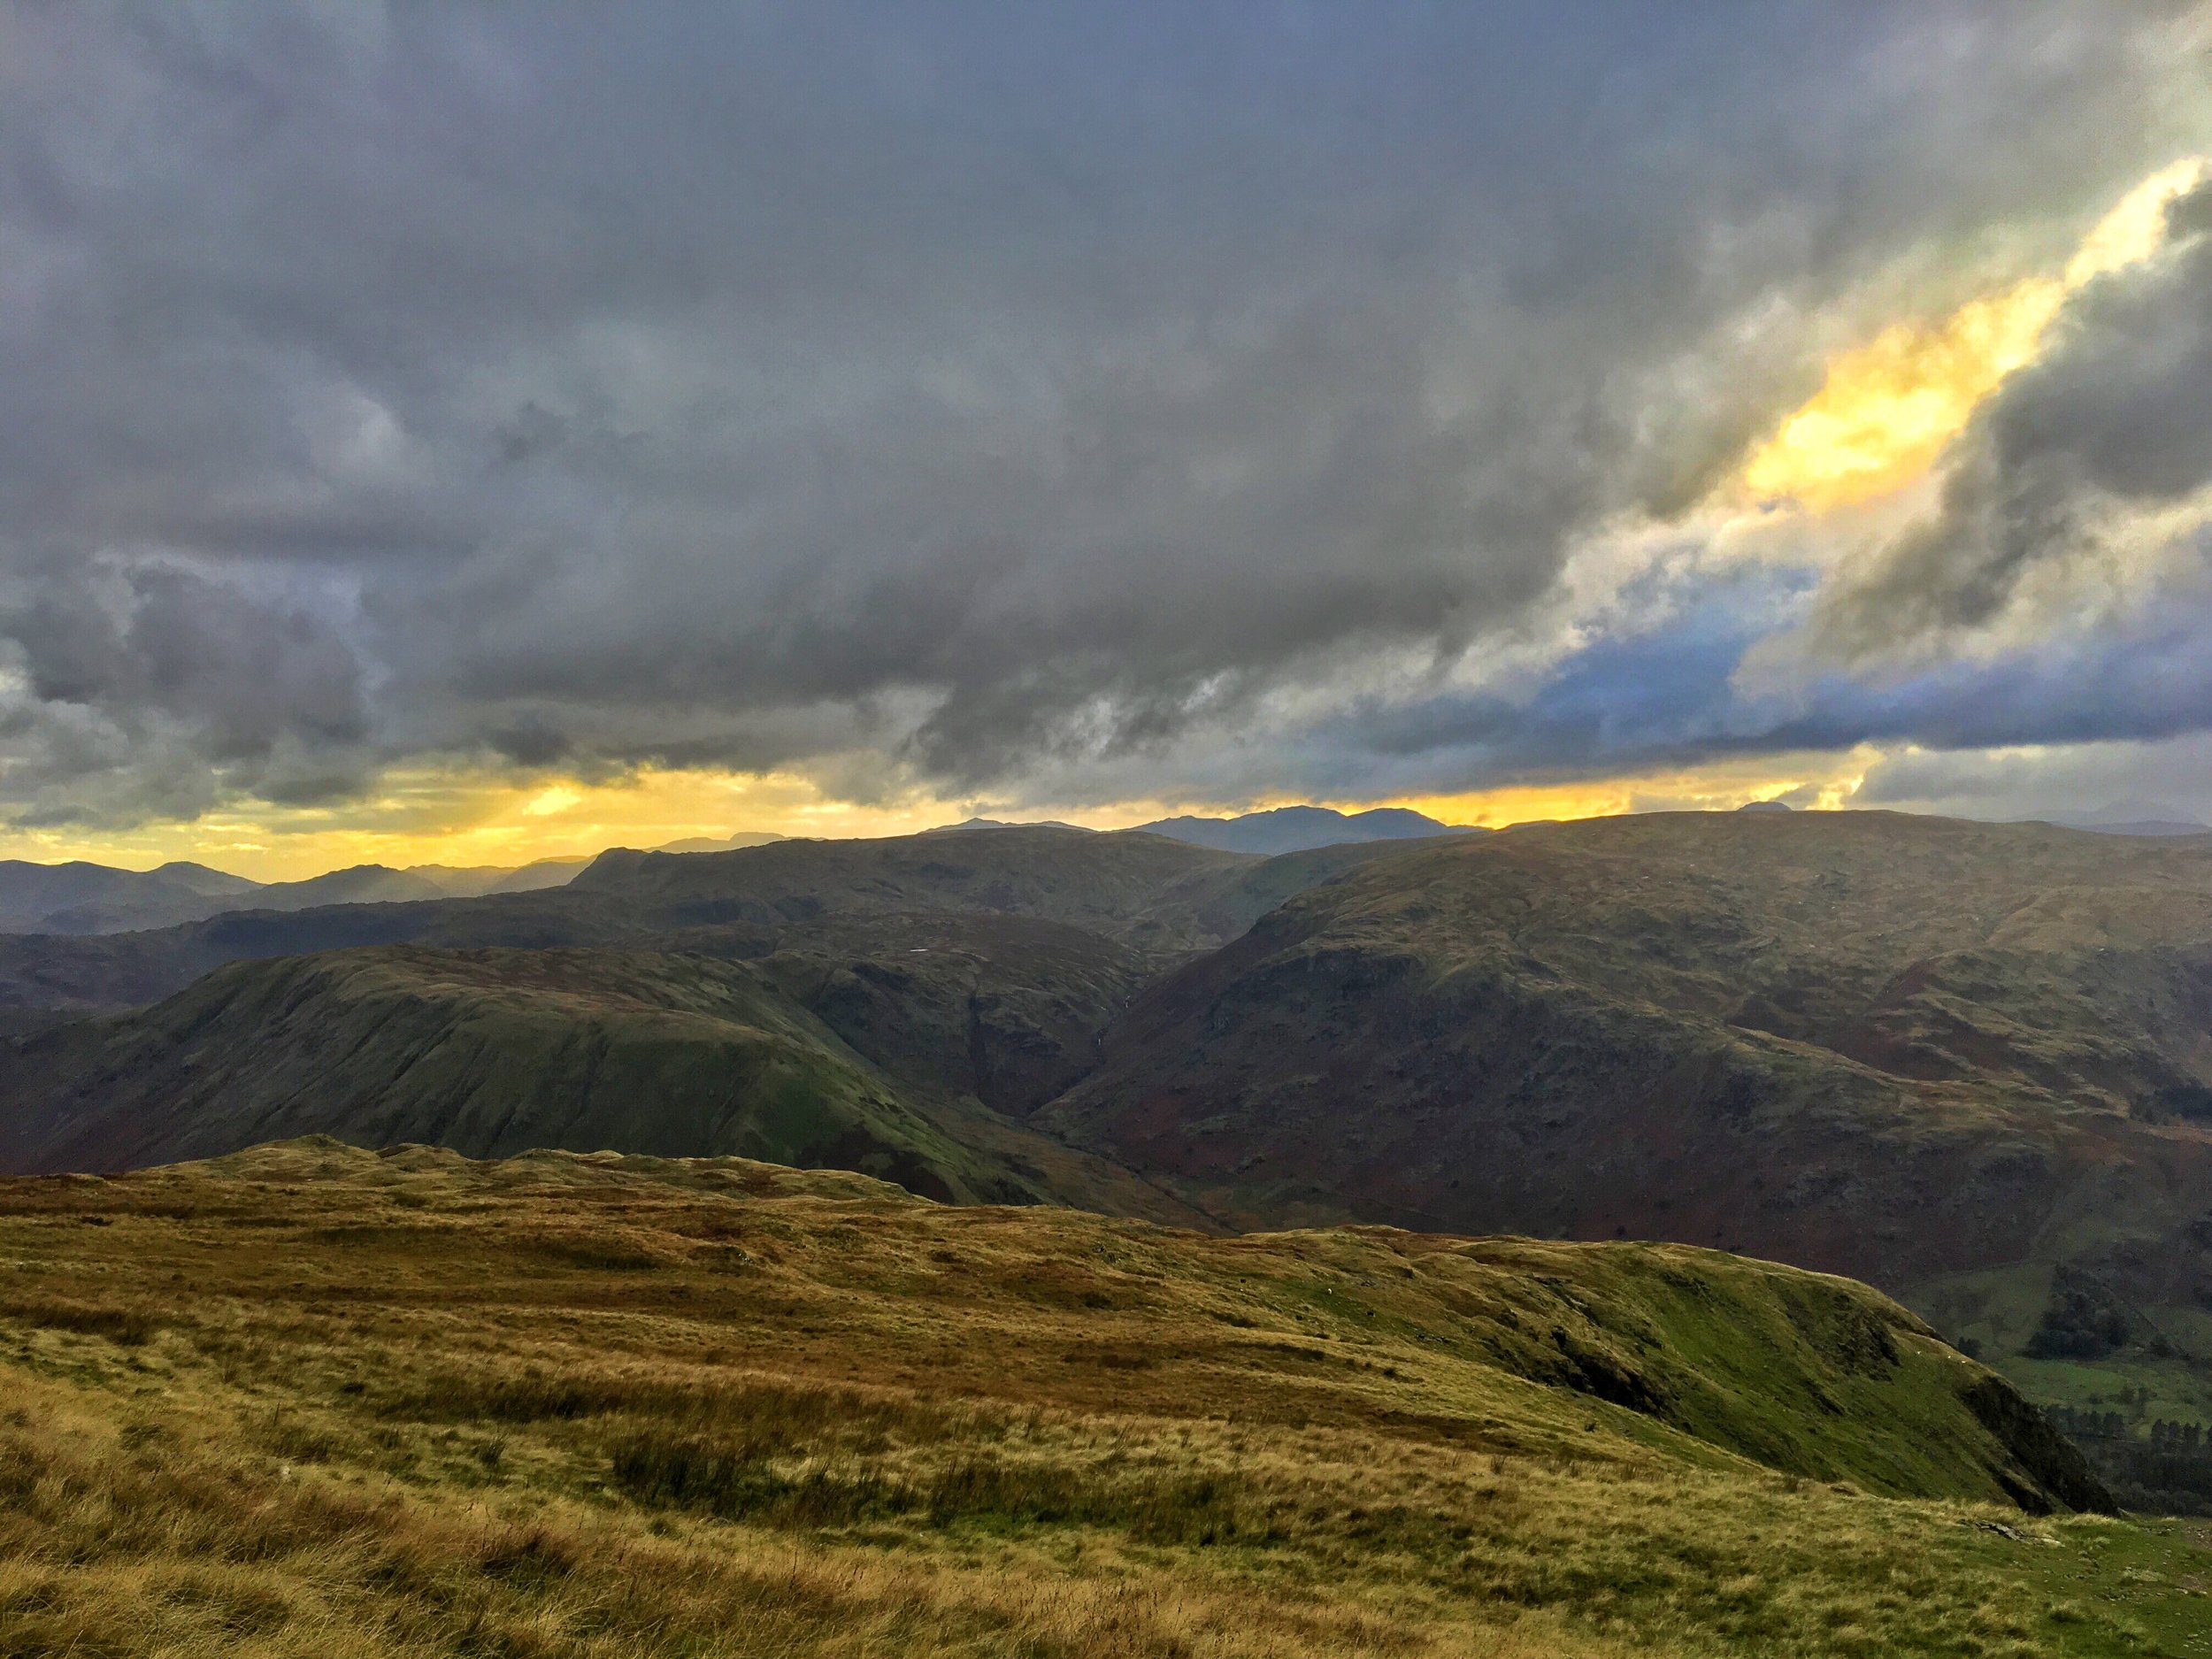 View climbing up Helvellyn in Northern England